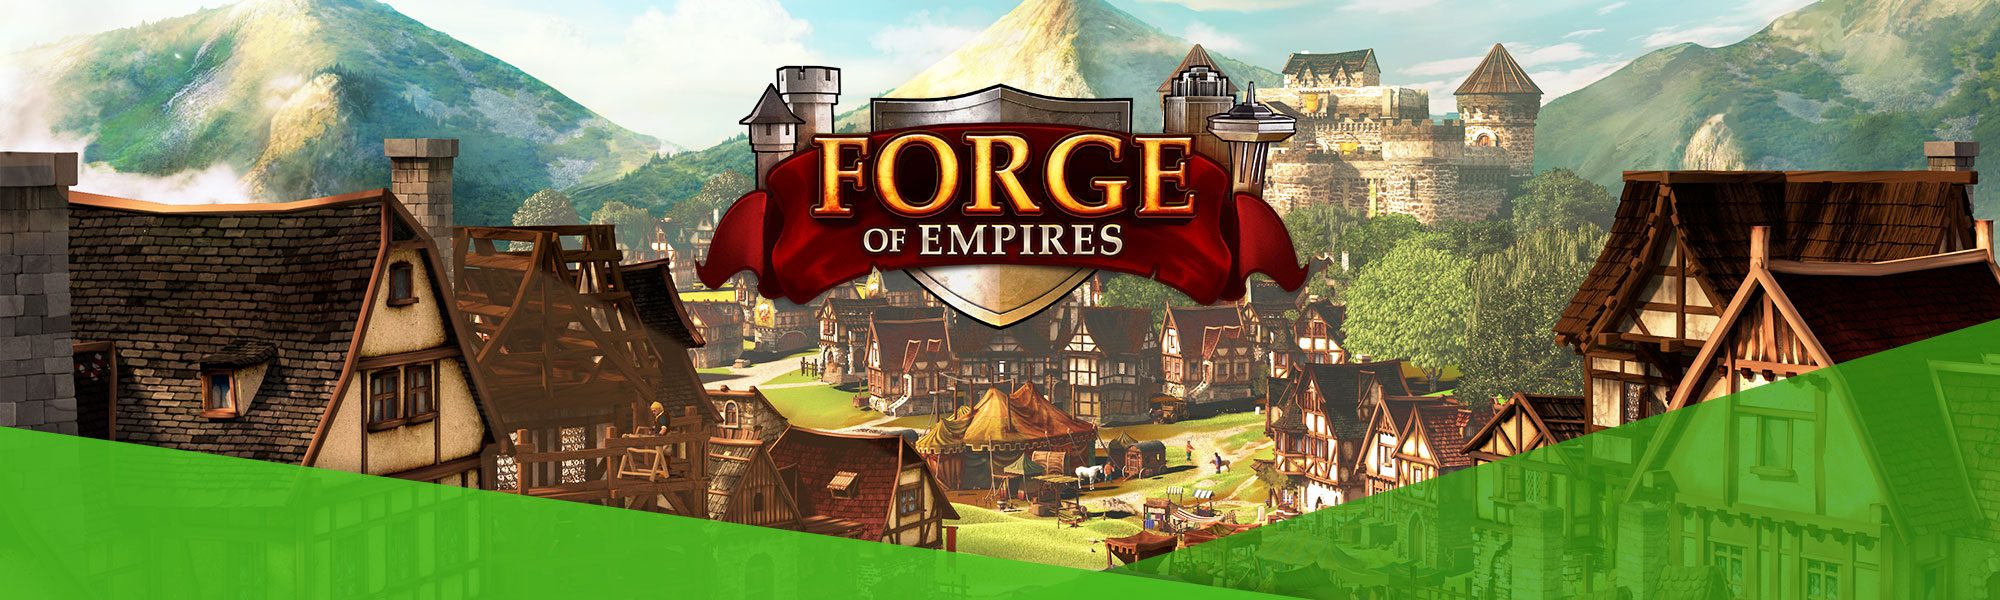 Forge Of Empires – Epochal Online Strategy Game now in the browser